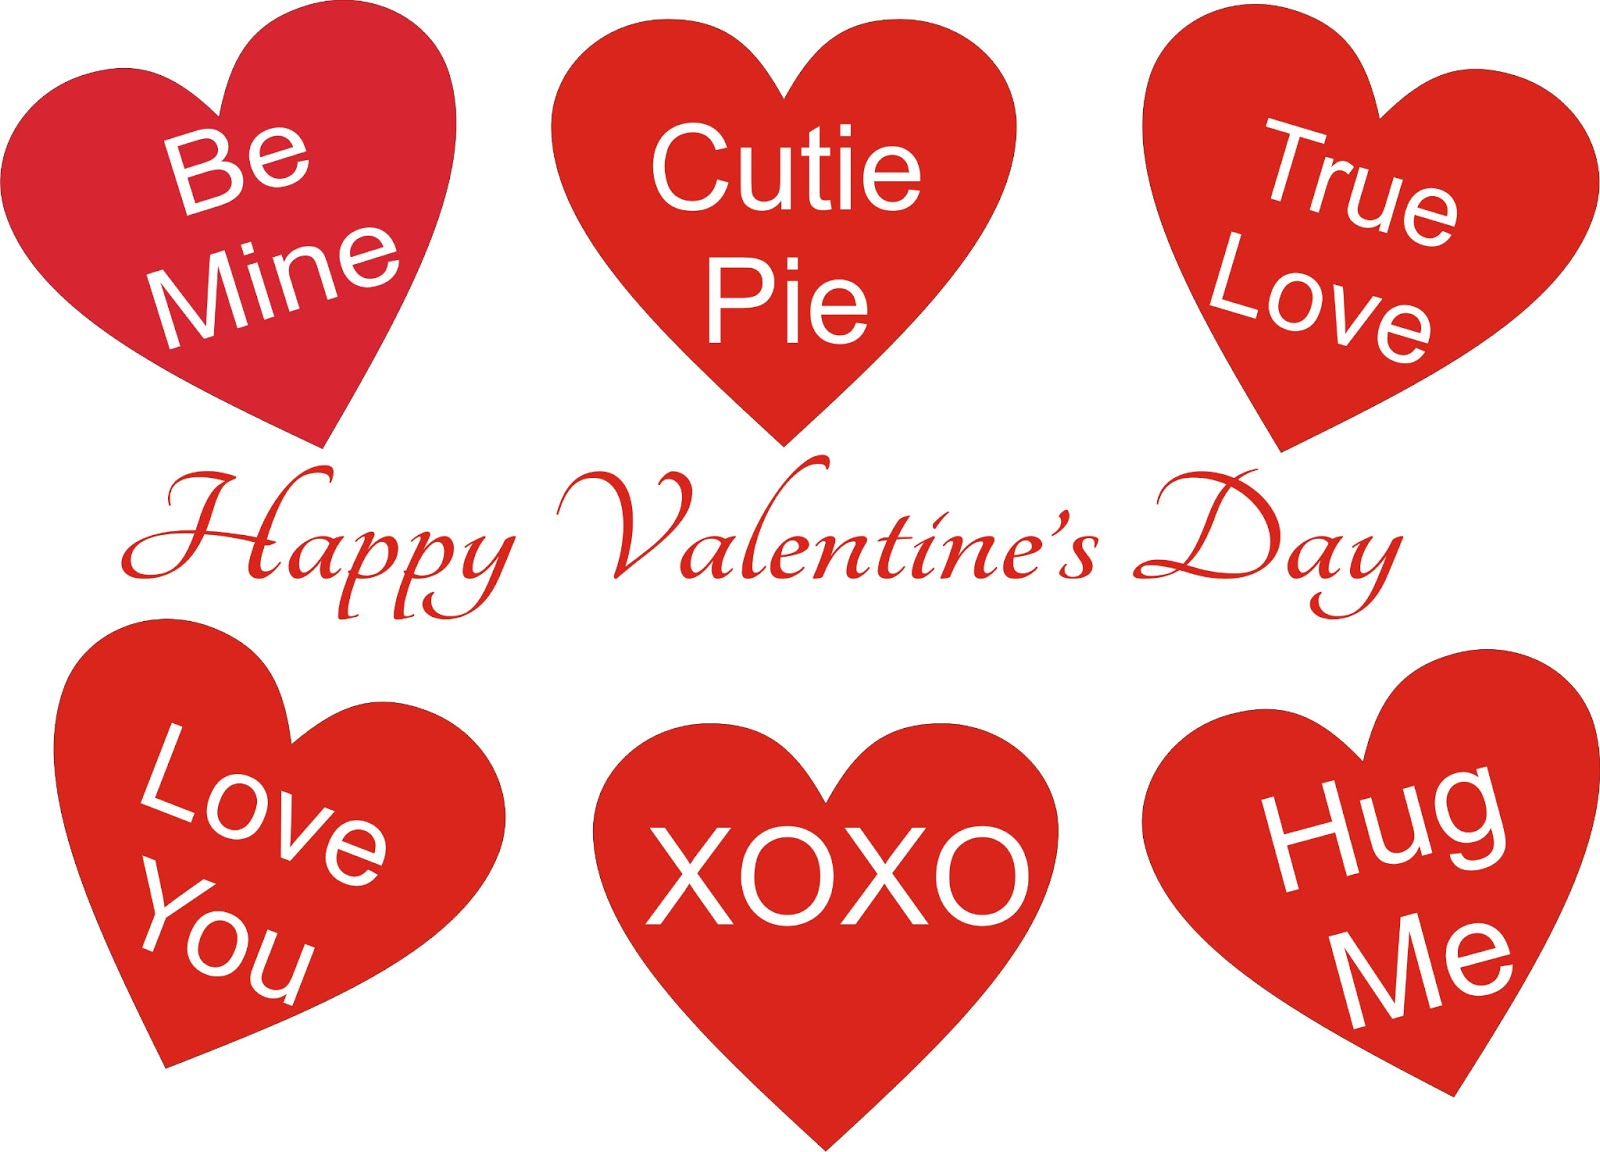 Cute Valentines Day Sayings – Cute Valentine Sayings for Cards